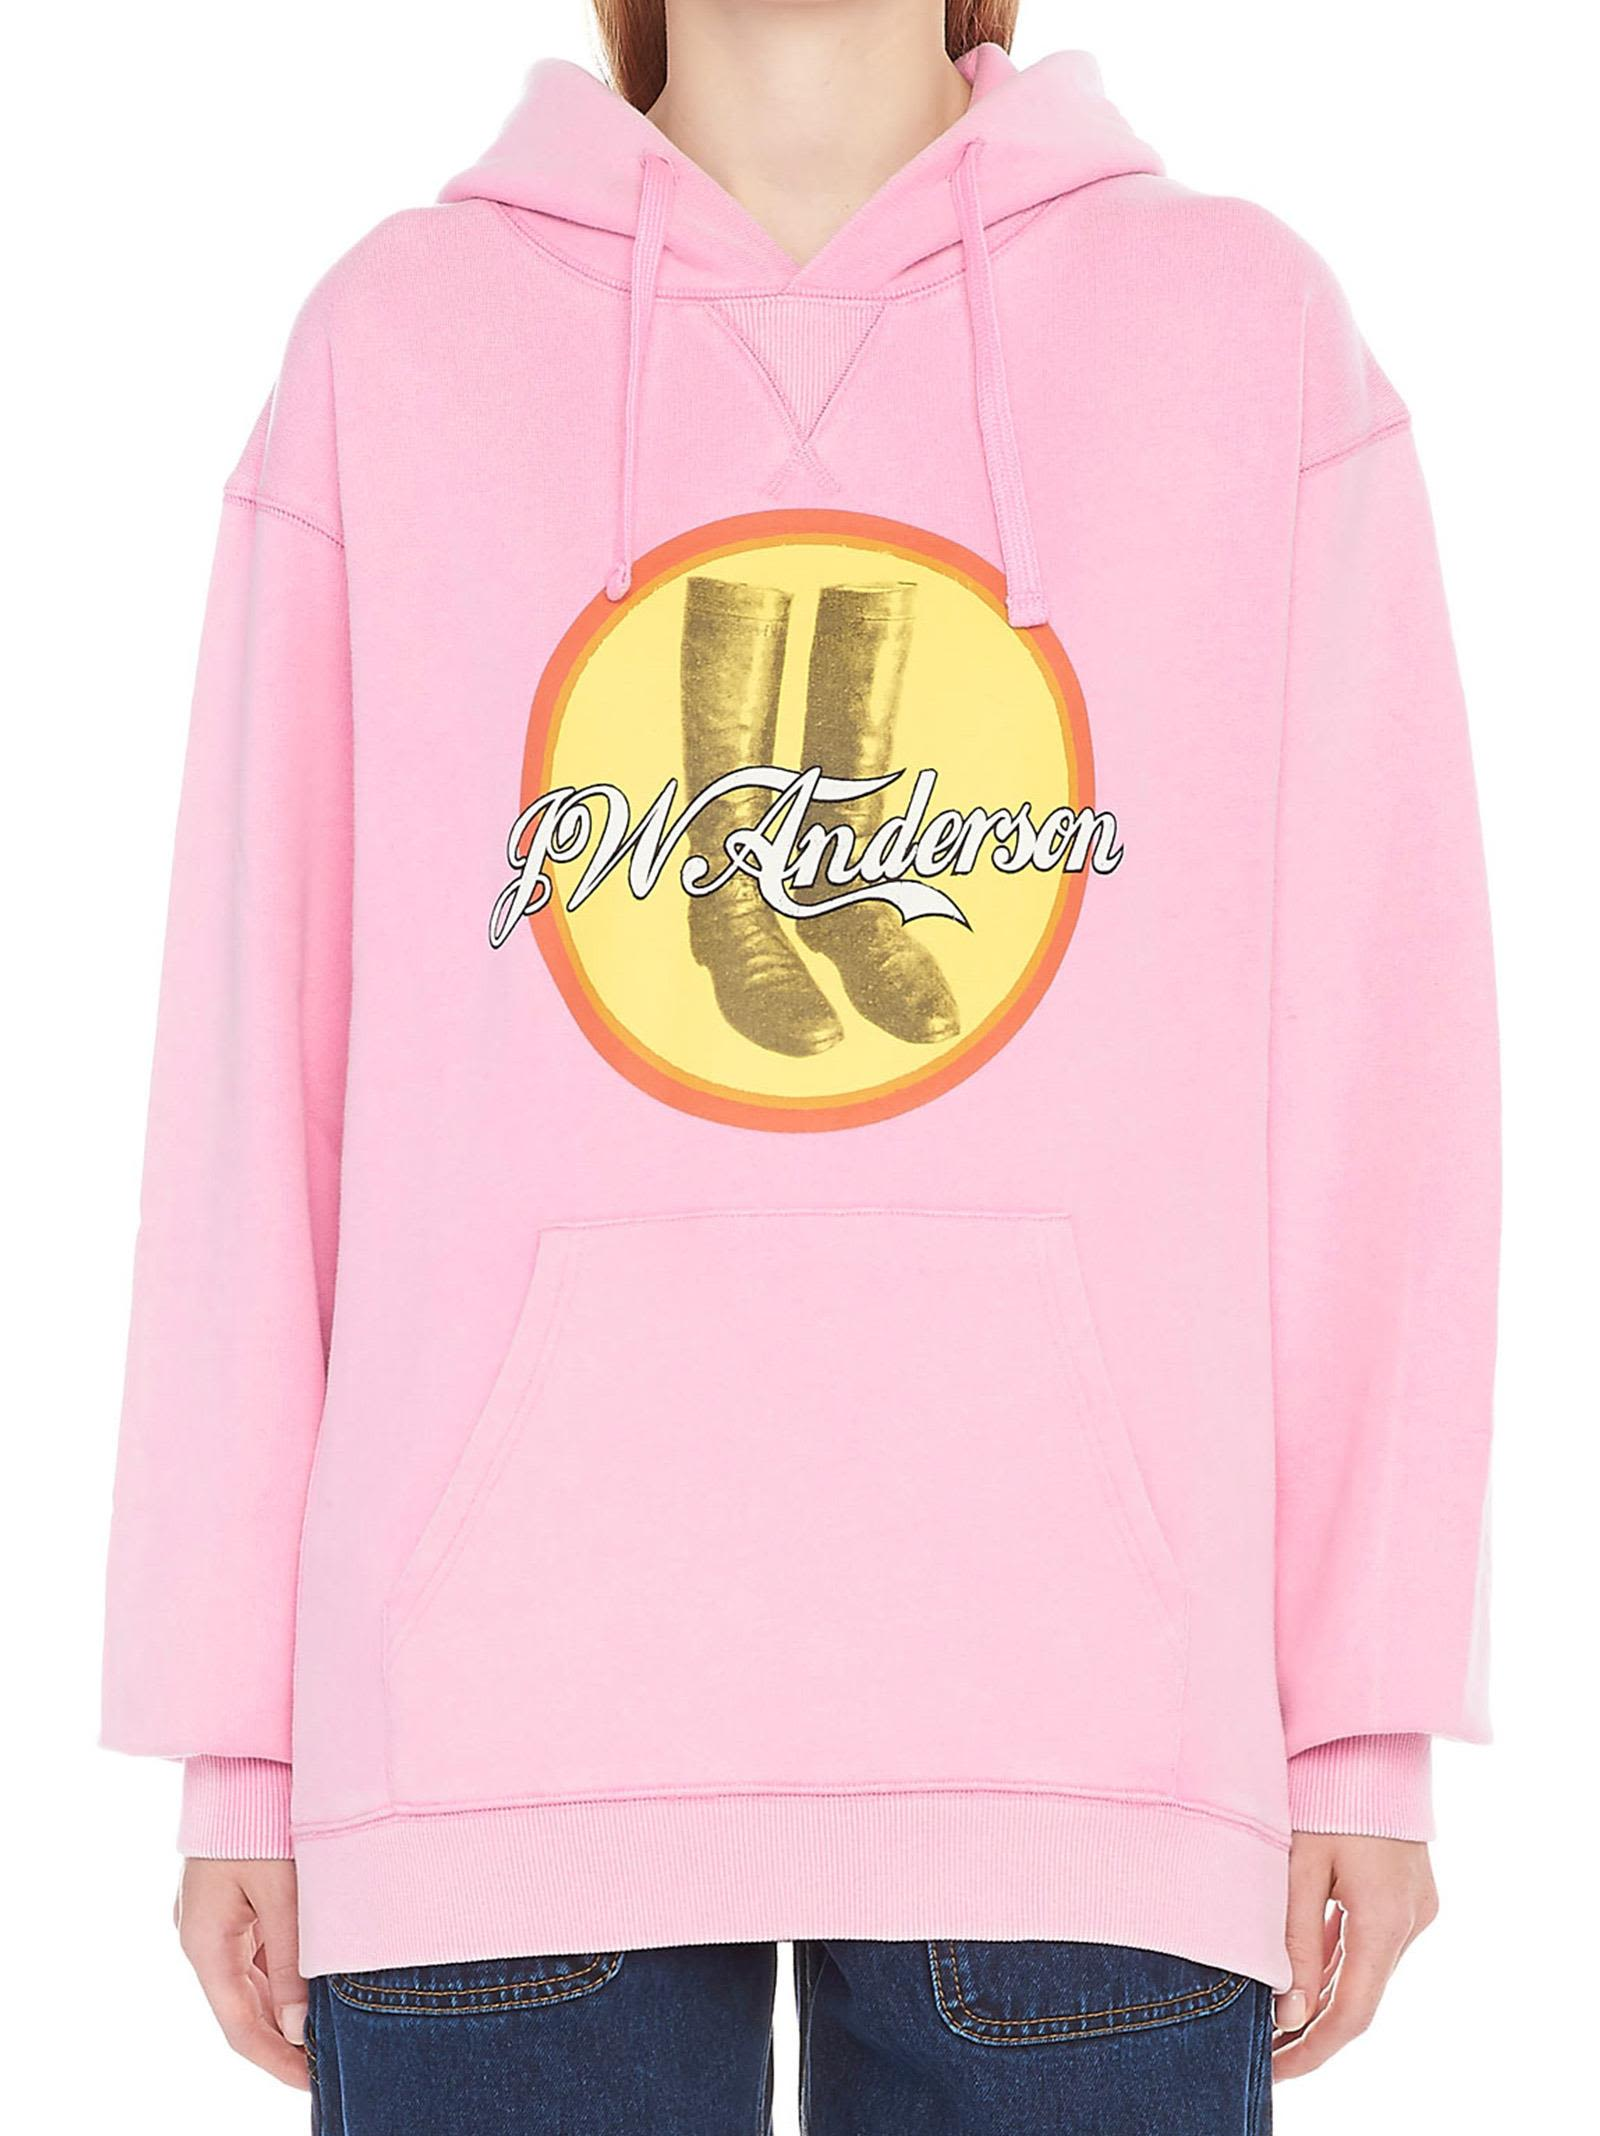 J.W. Anderson 'Cola Boots' Hoodie in Pink